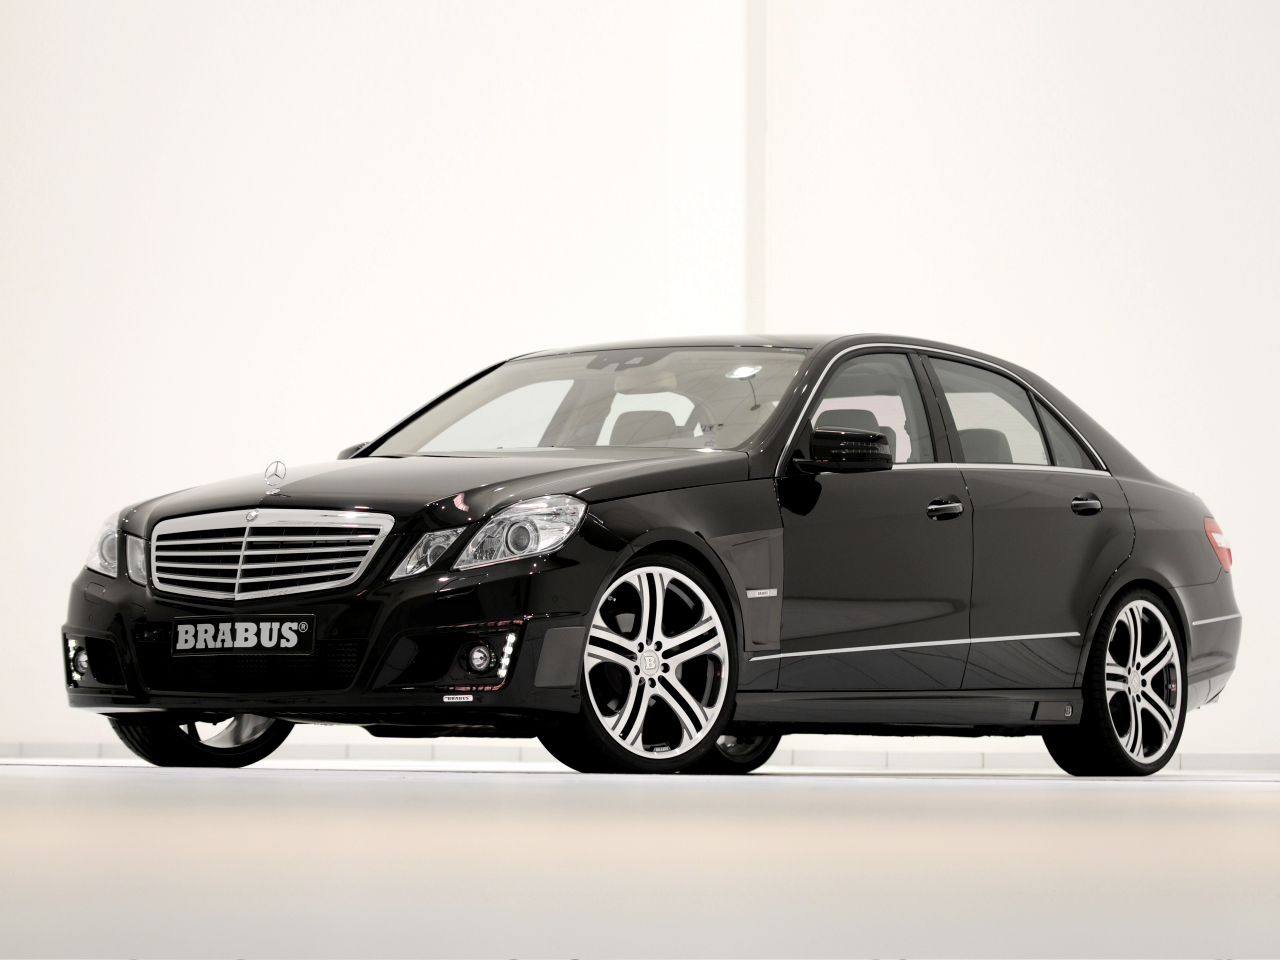 All-new Mercedes E-class by Brabus